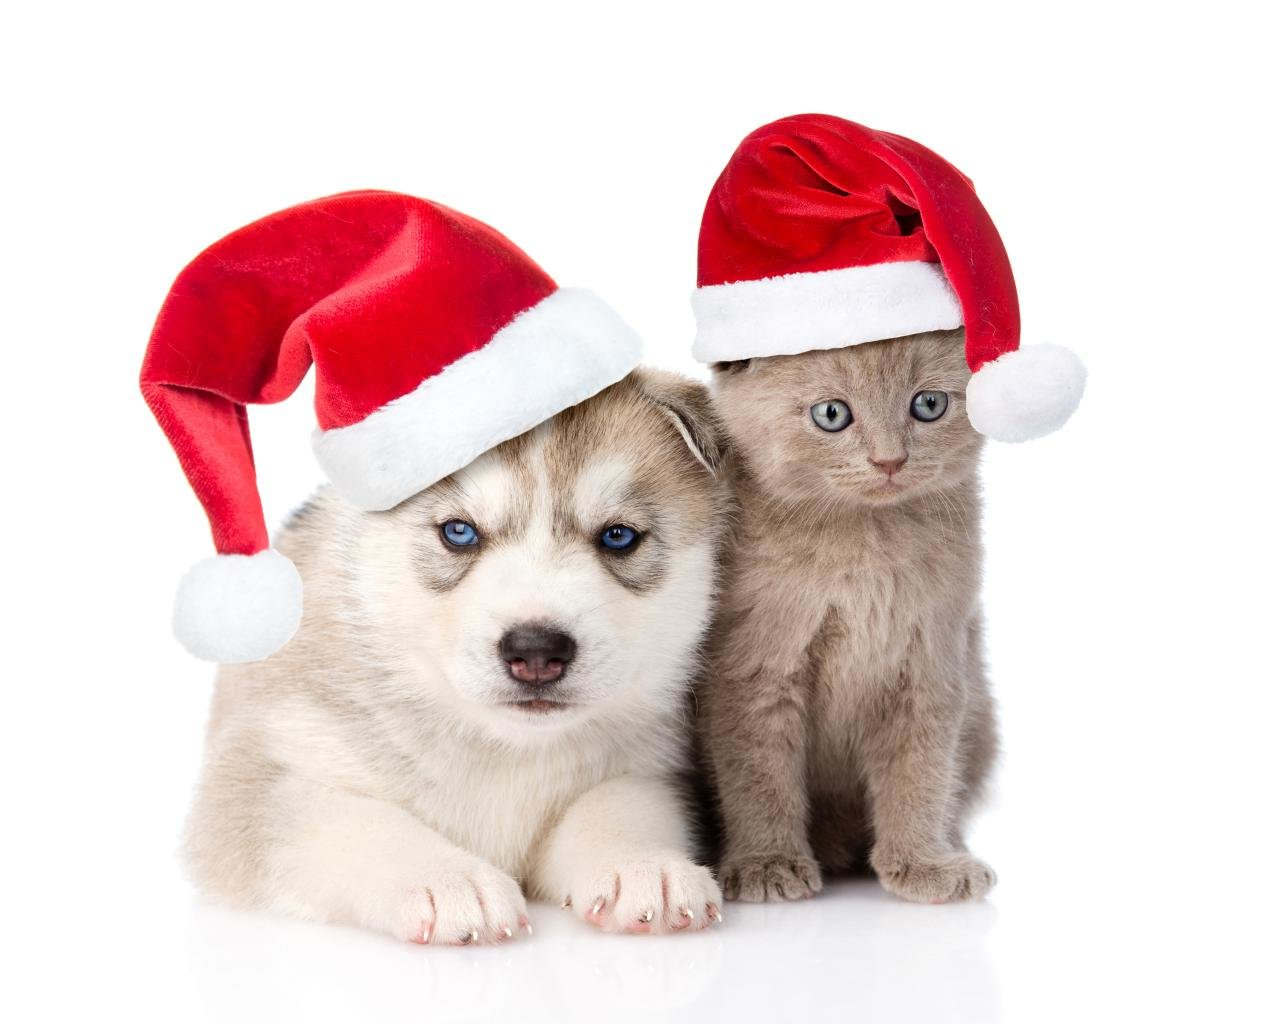 Free download Cat and Dog wallpaper ID:125360 hd 1280x1024 for desktop